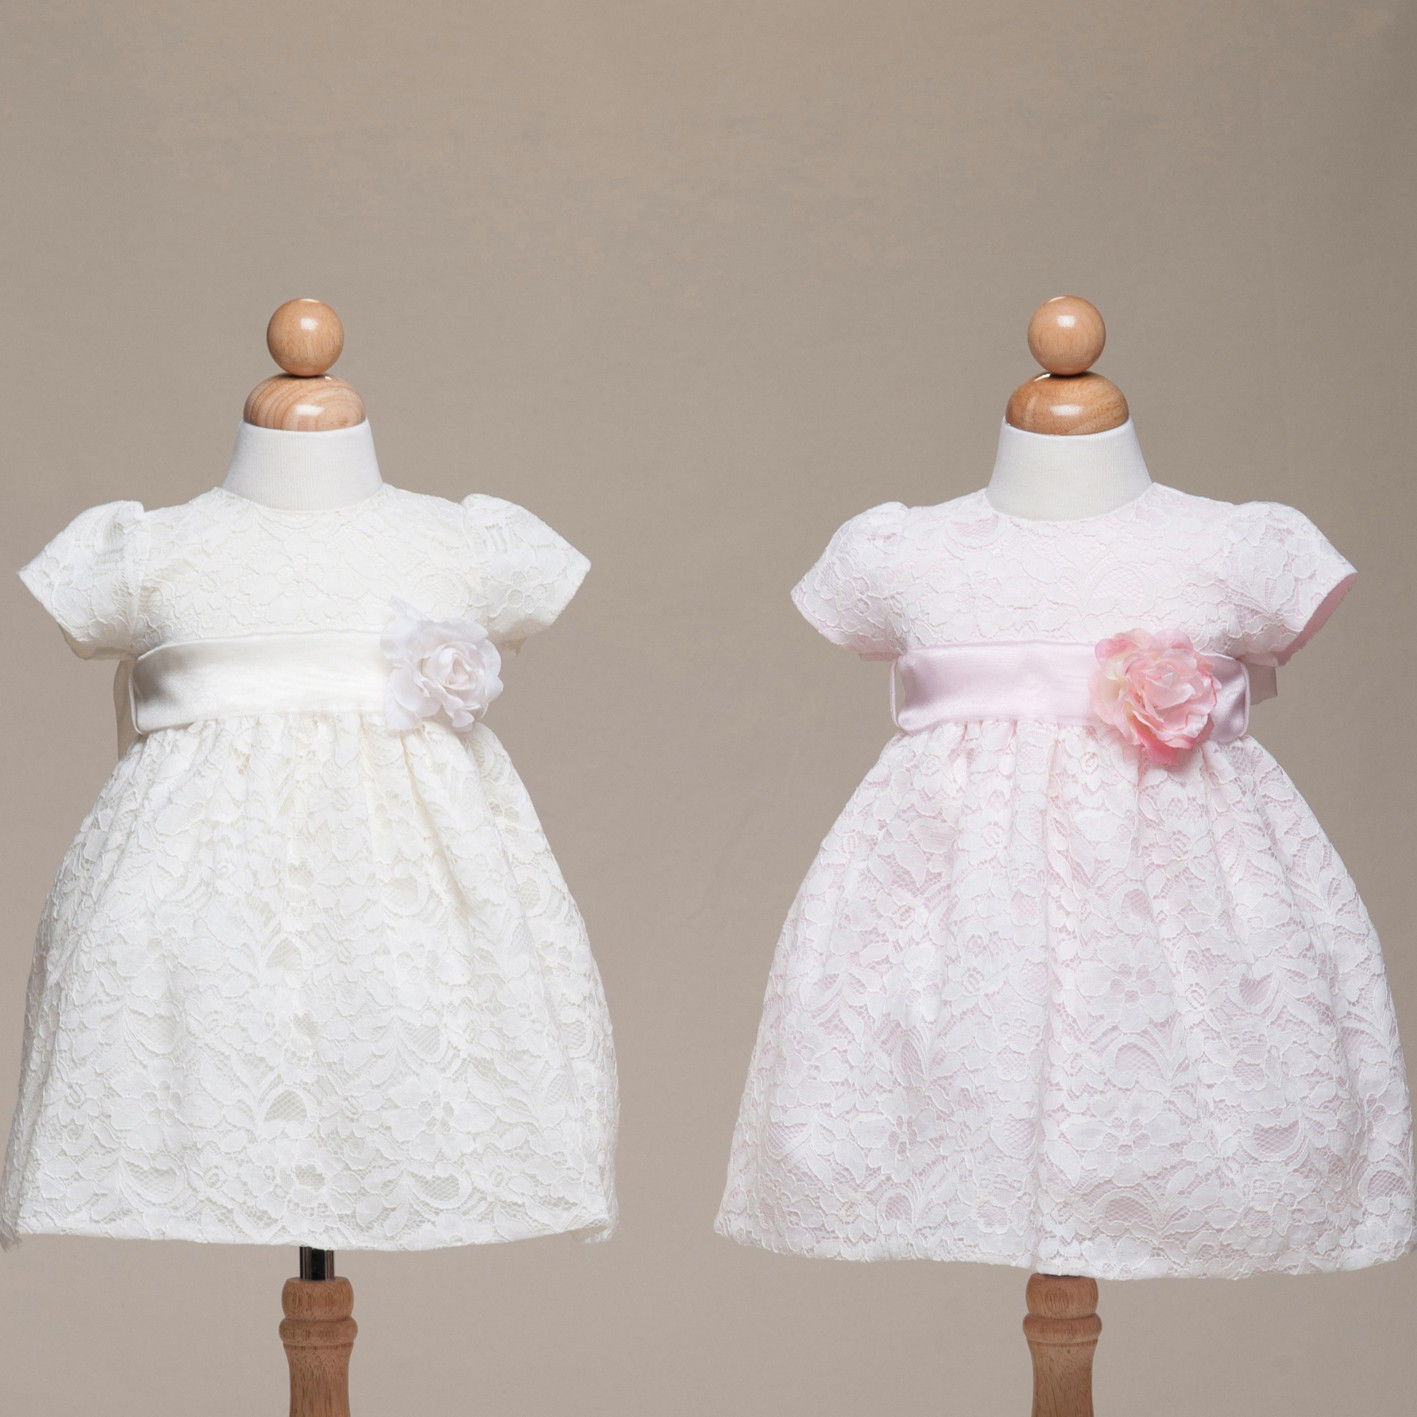 Image 1 of Stunning Ivory Lace Flower Girl Pageant Dress w/Rose Flower Crayon Kids USA - Iv